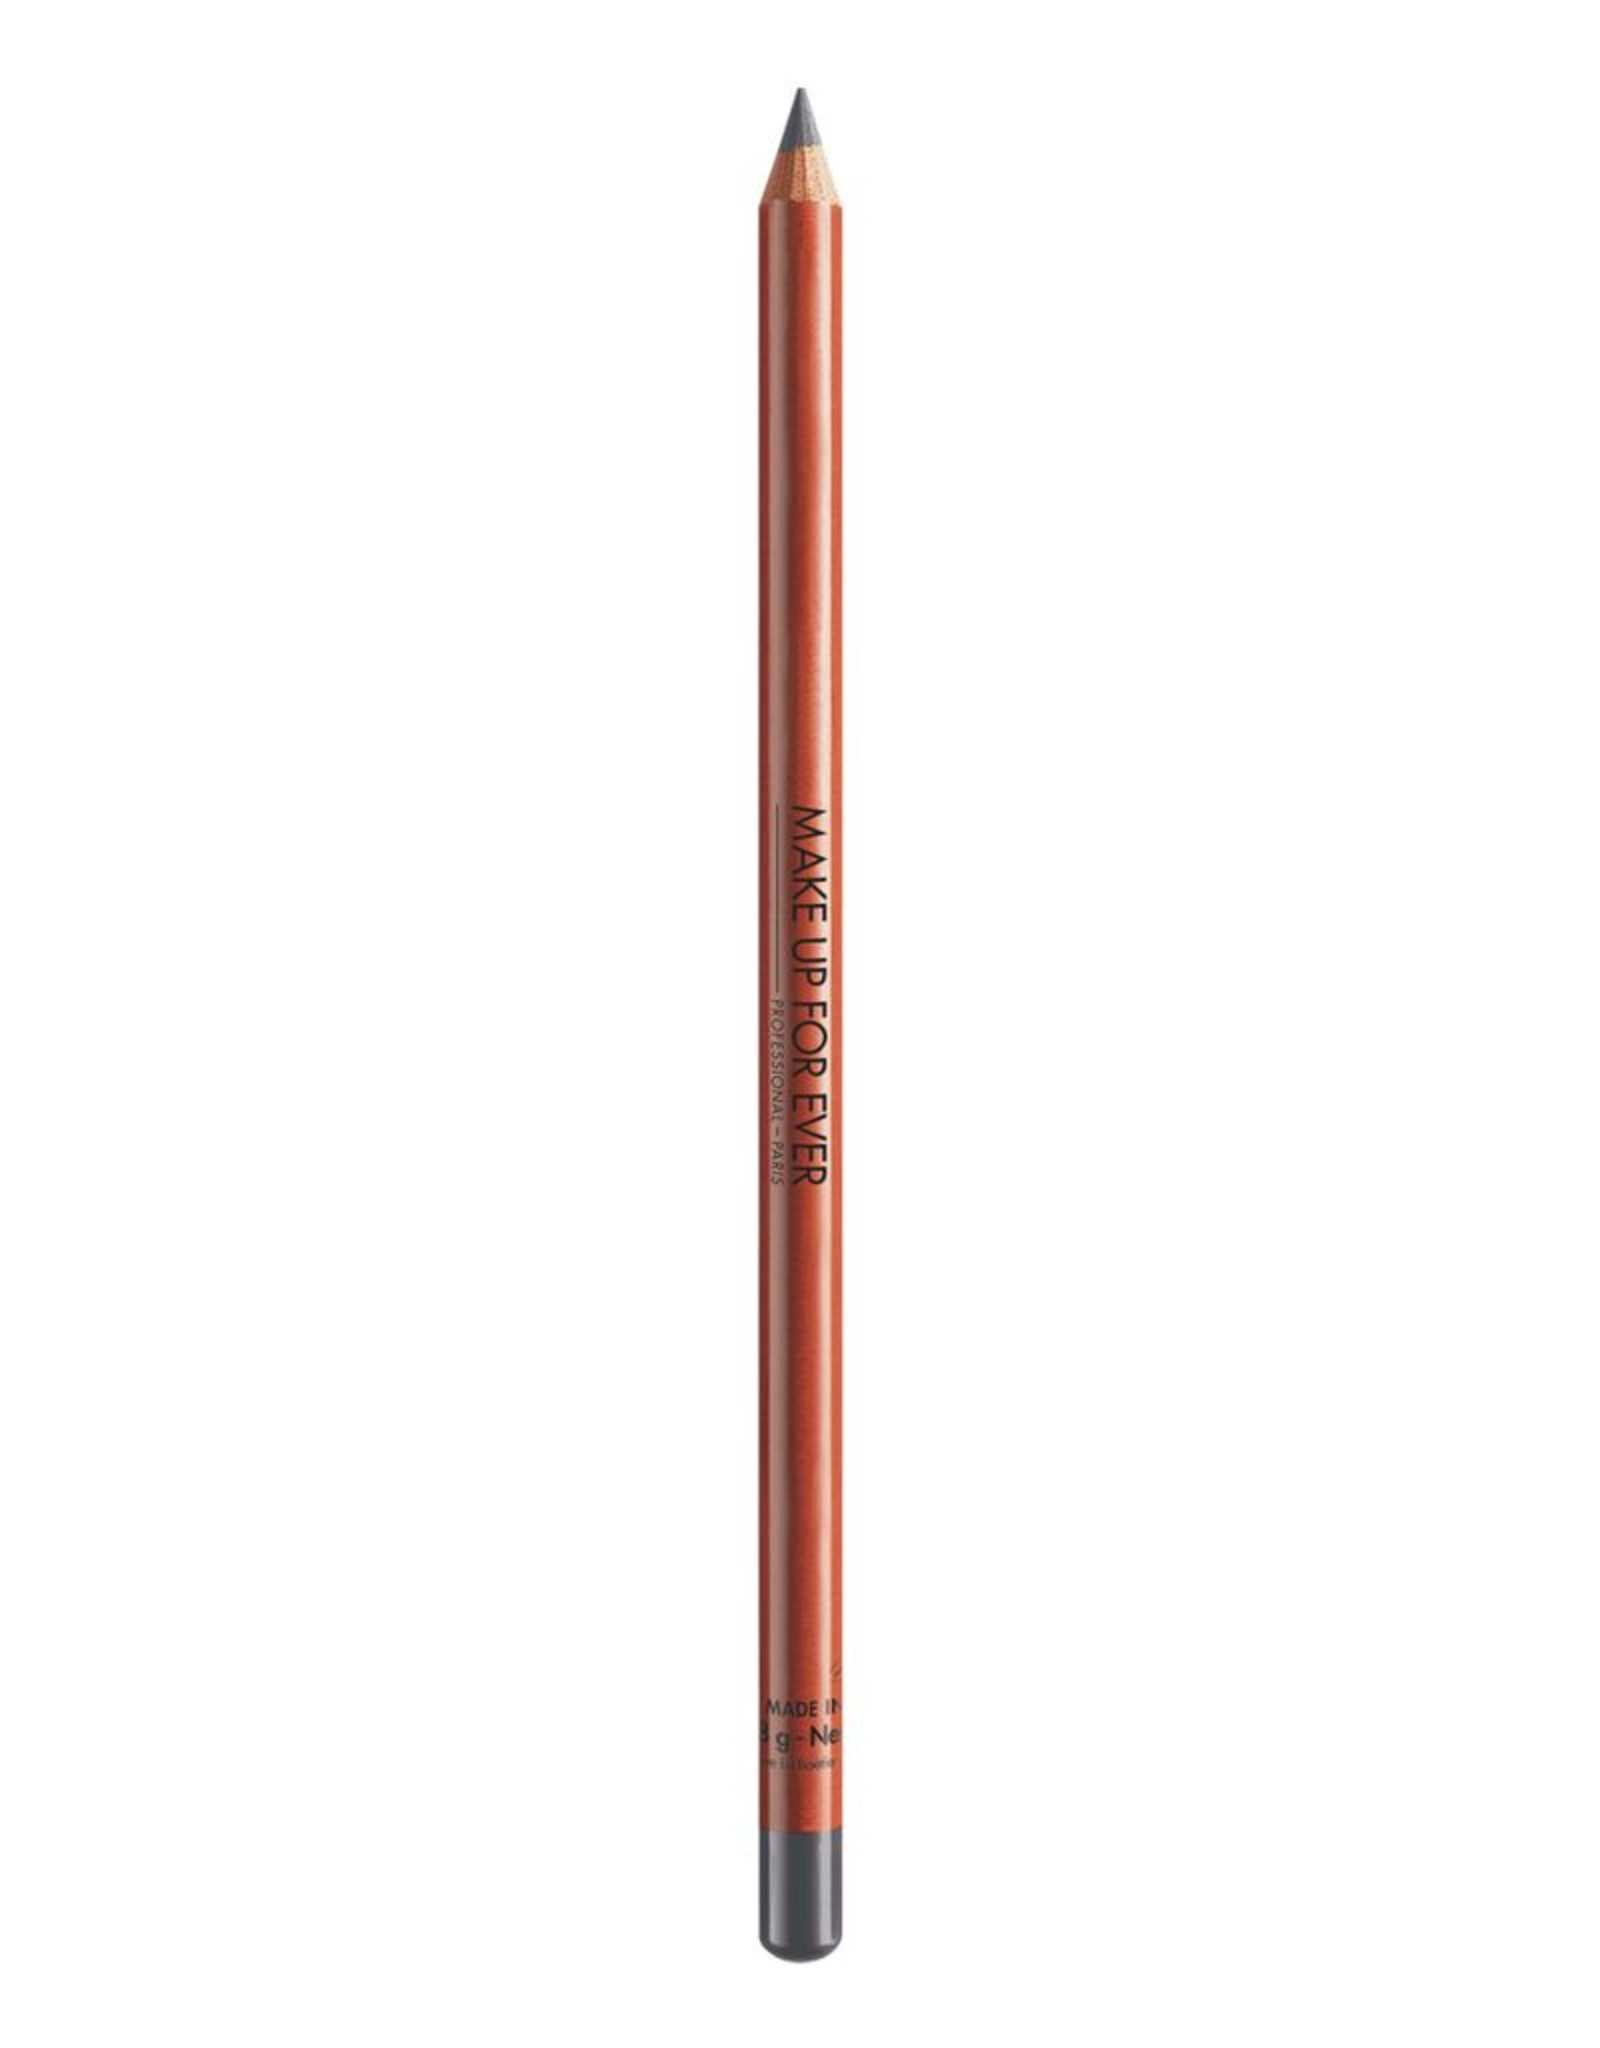 MUFE CRAYON YEUX 1,8g